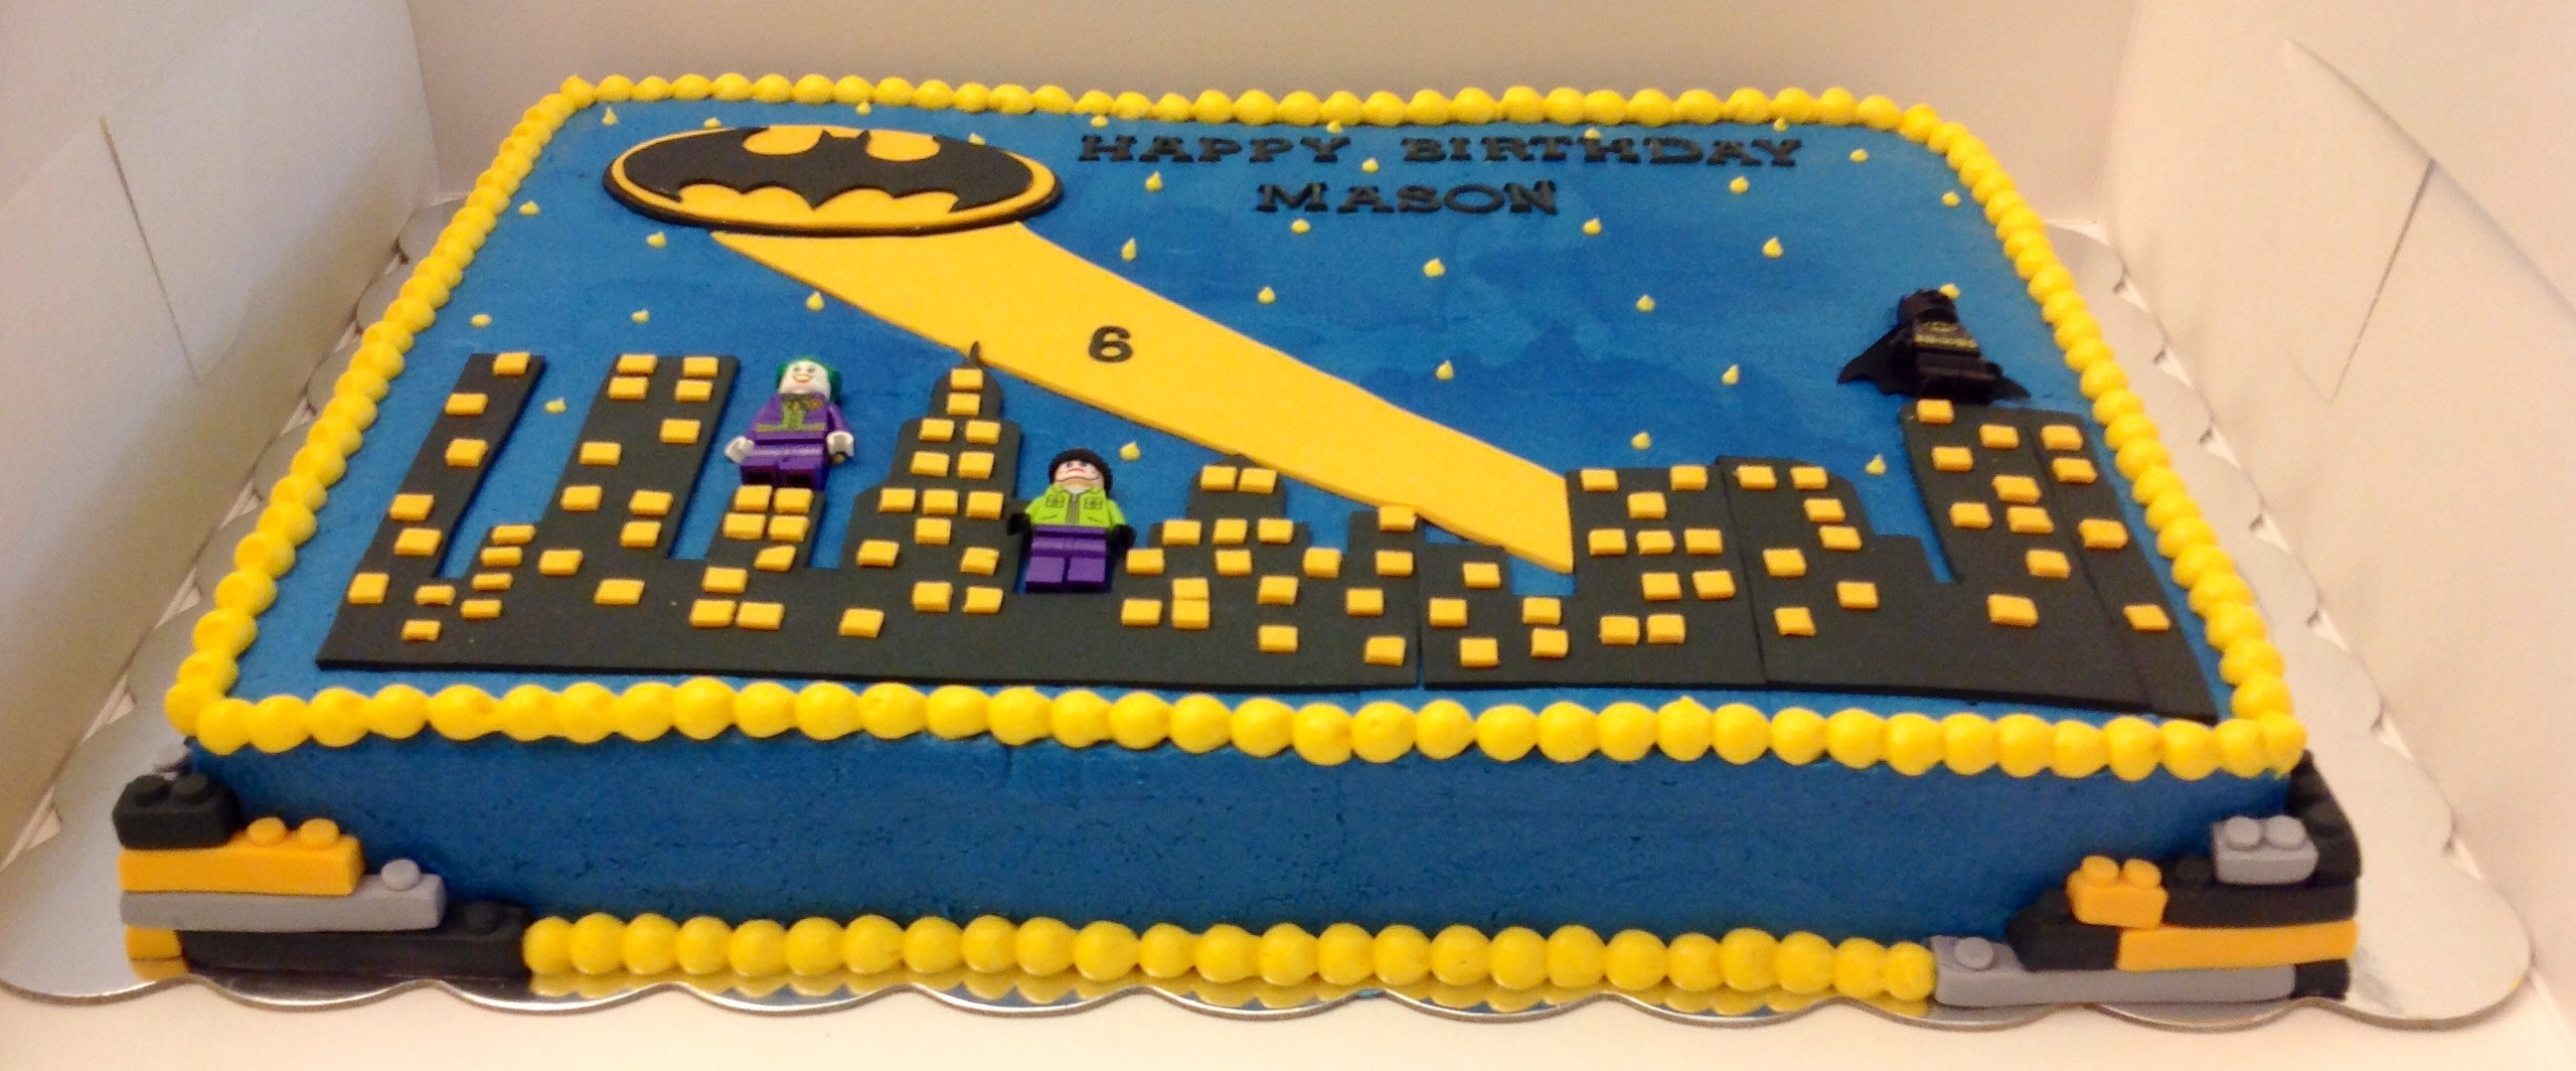 Batman Sheet Cakecentral Com